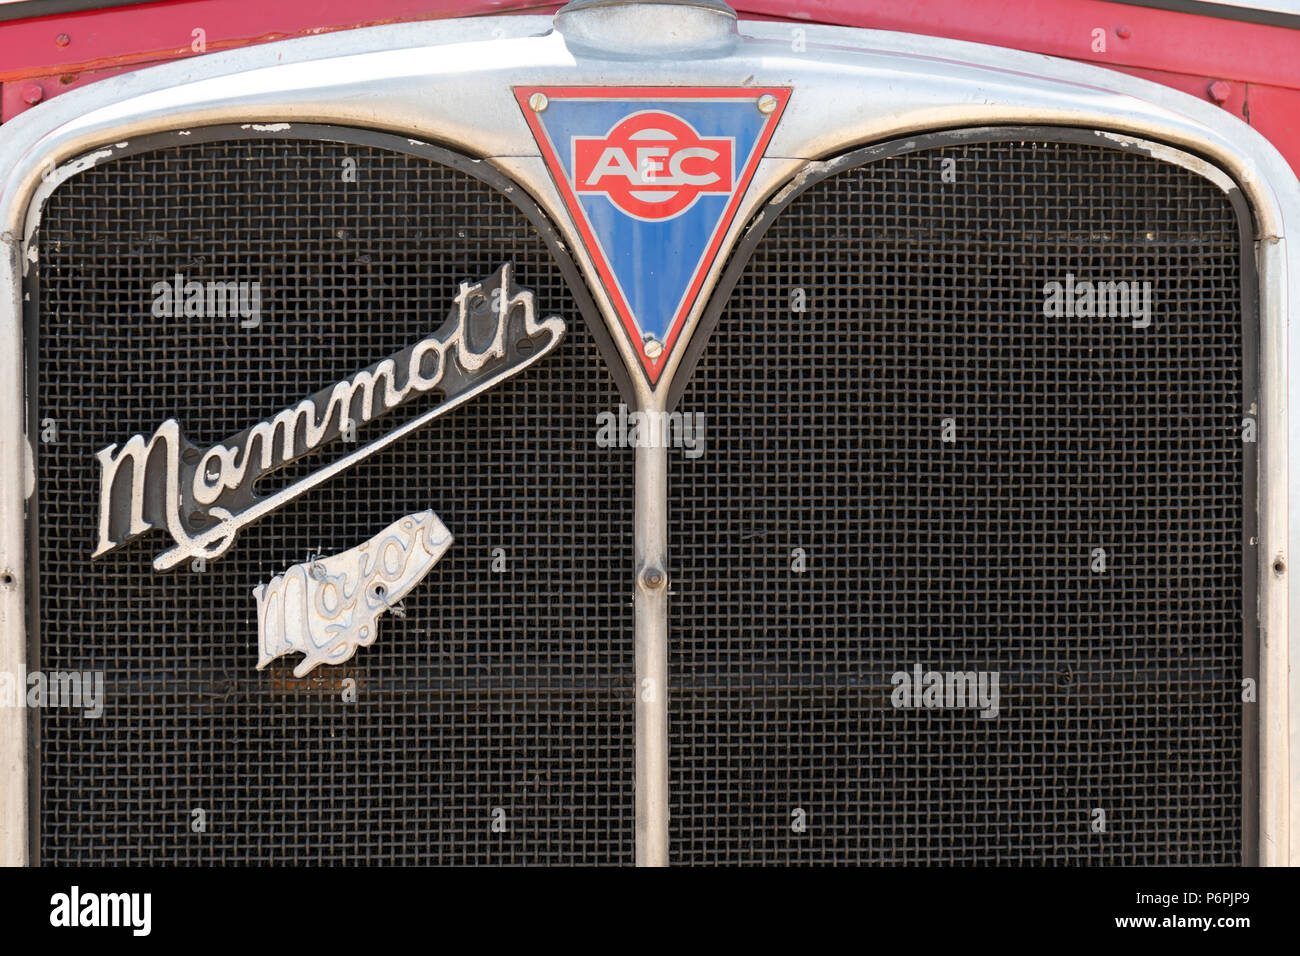 Logos on front of AEC Mammoth Major 6 Mk111 - Stock Image